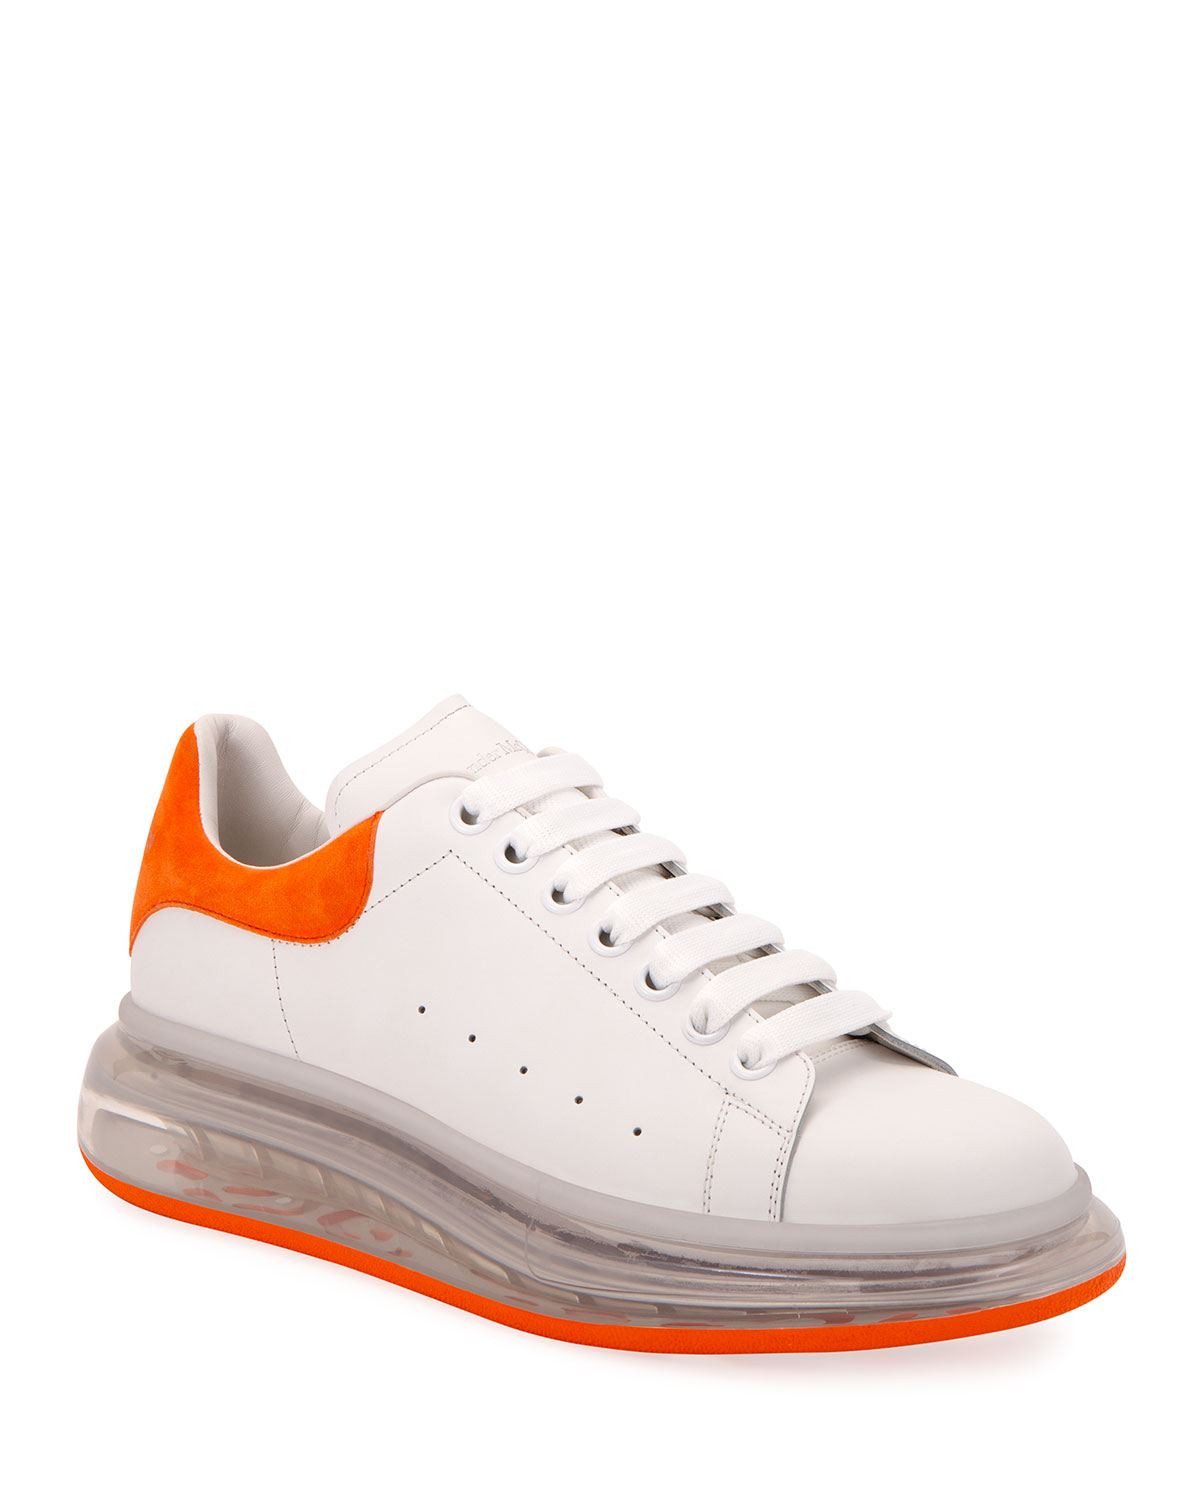 Clear-Sole Leather/Suede Sneakers